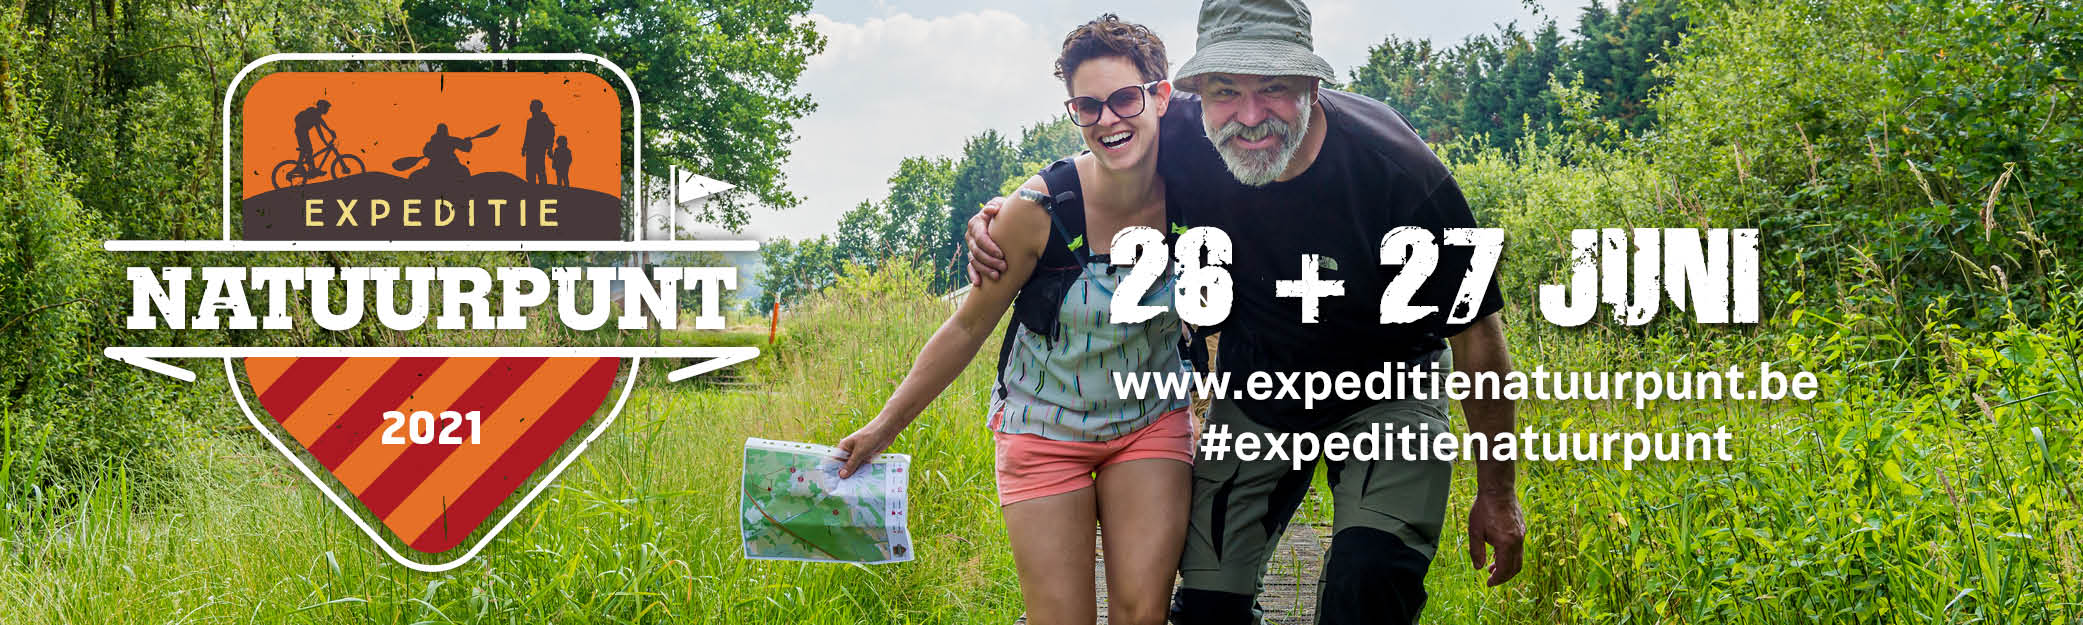 Expeditie Natuurpunt 2021